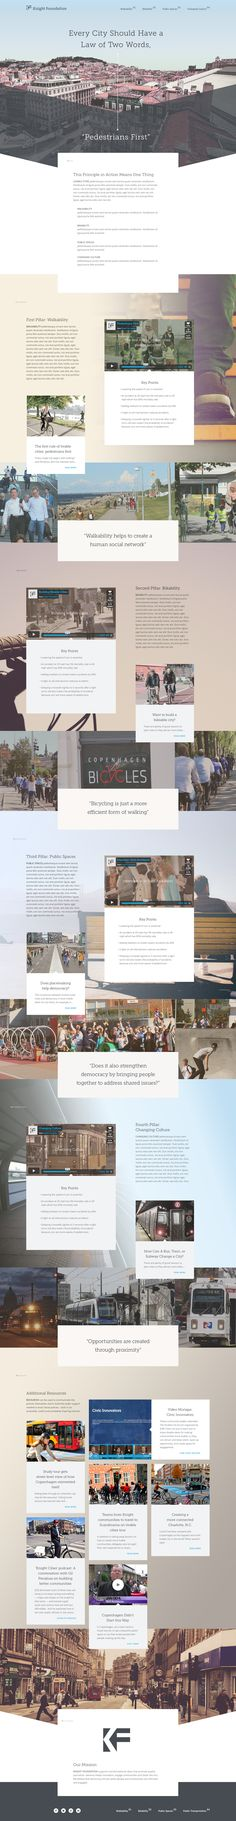 """""""Livable Cities"""" - nice website template. """"Every City Should Have a Law of Two Words: Pedestrians First"""" #template #website #city"""